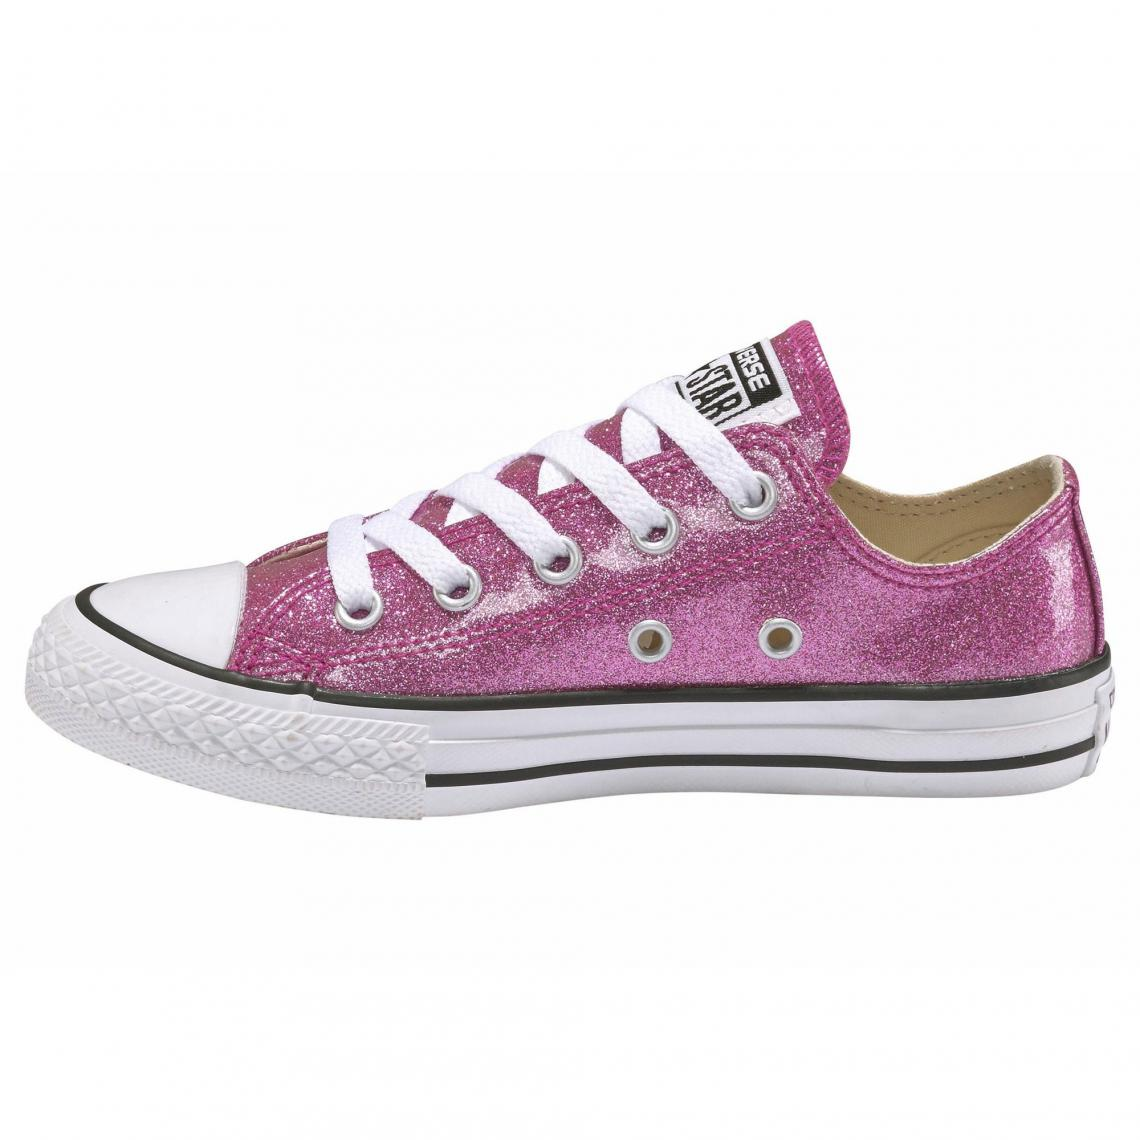 a8ea1fe2f3c4d Baskets en toile effet scintillant fille Chuck Taylor All Star-Ox ...